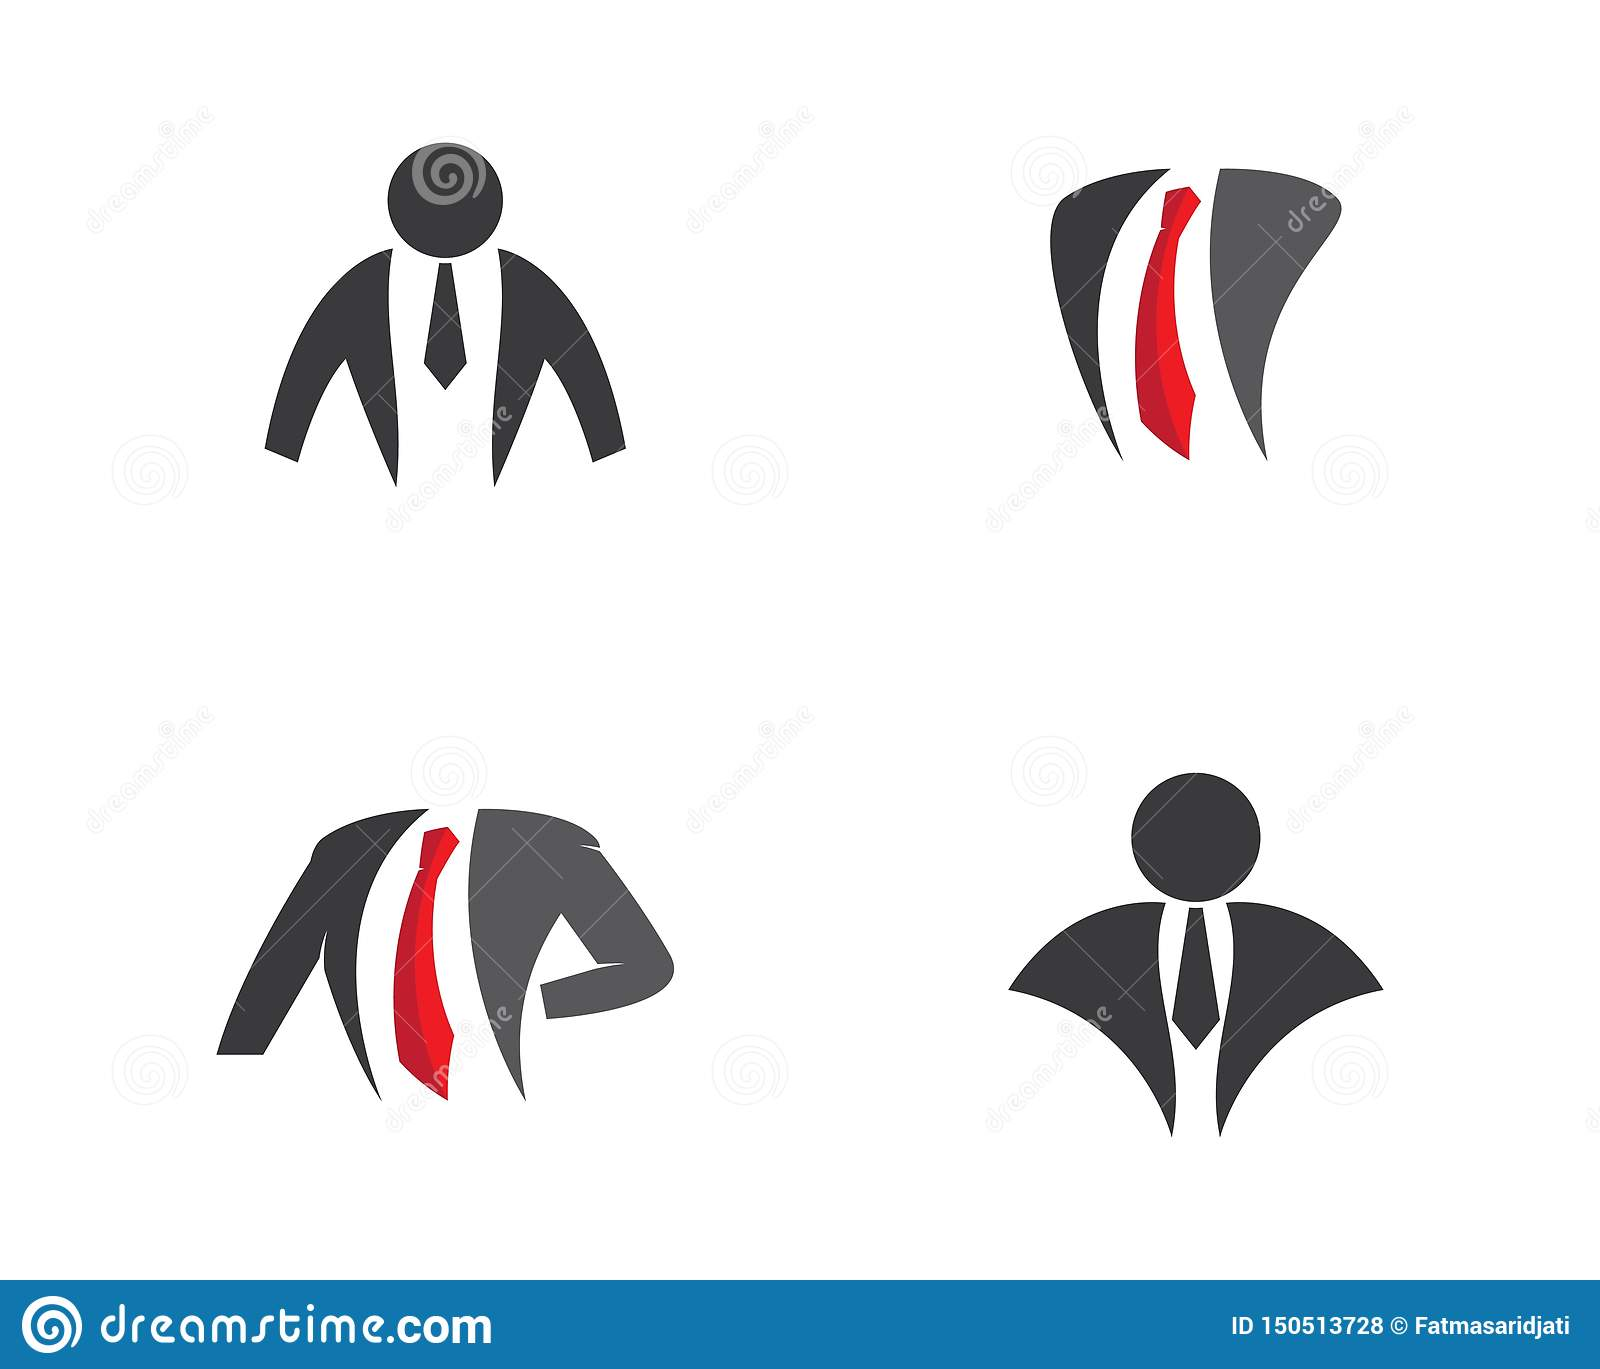 Businessman logo illustration